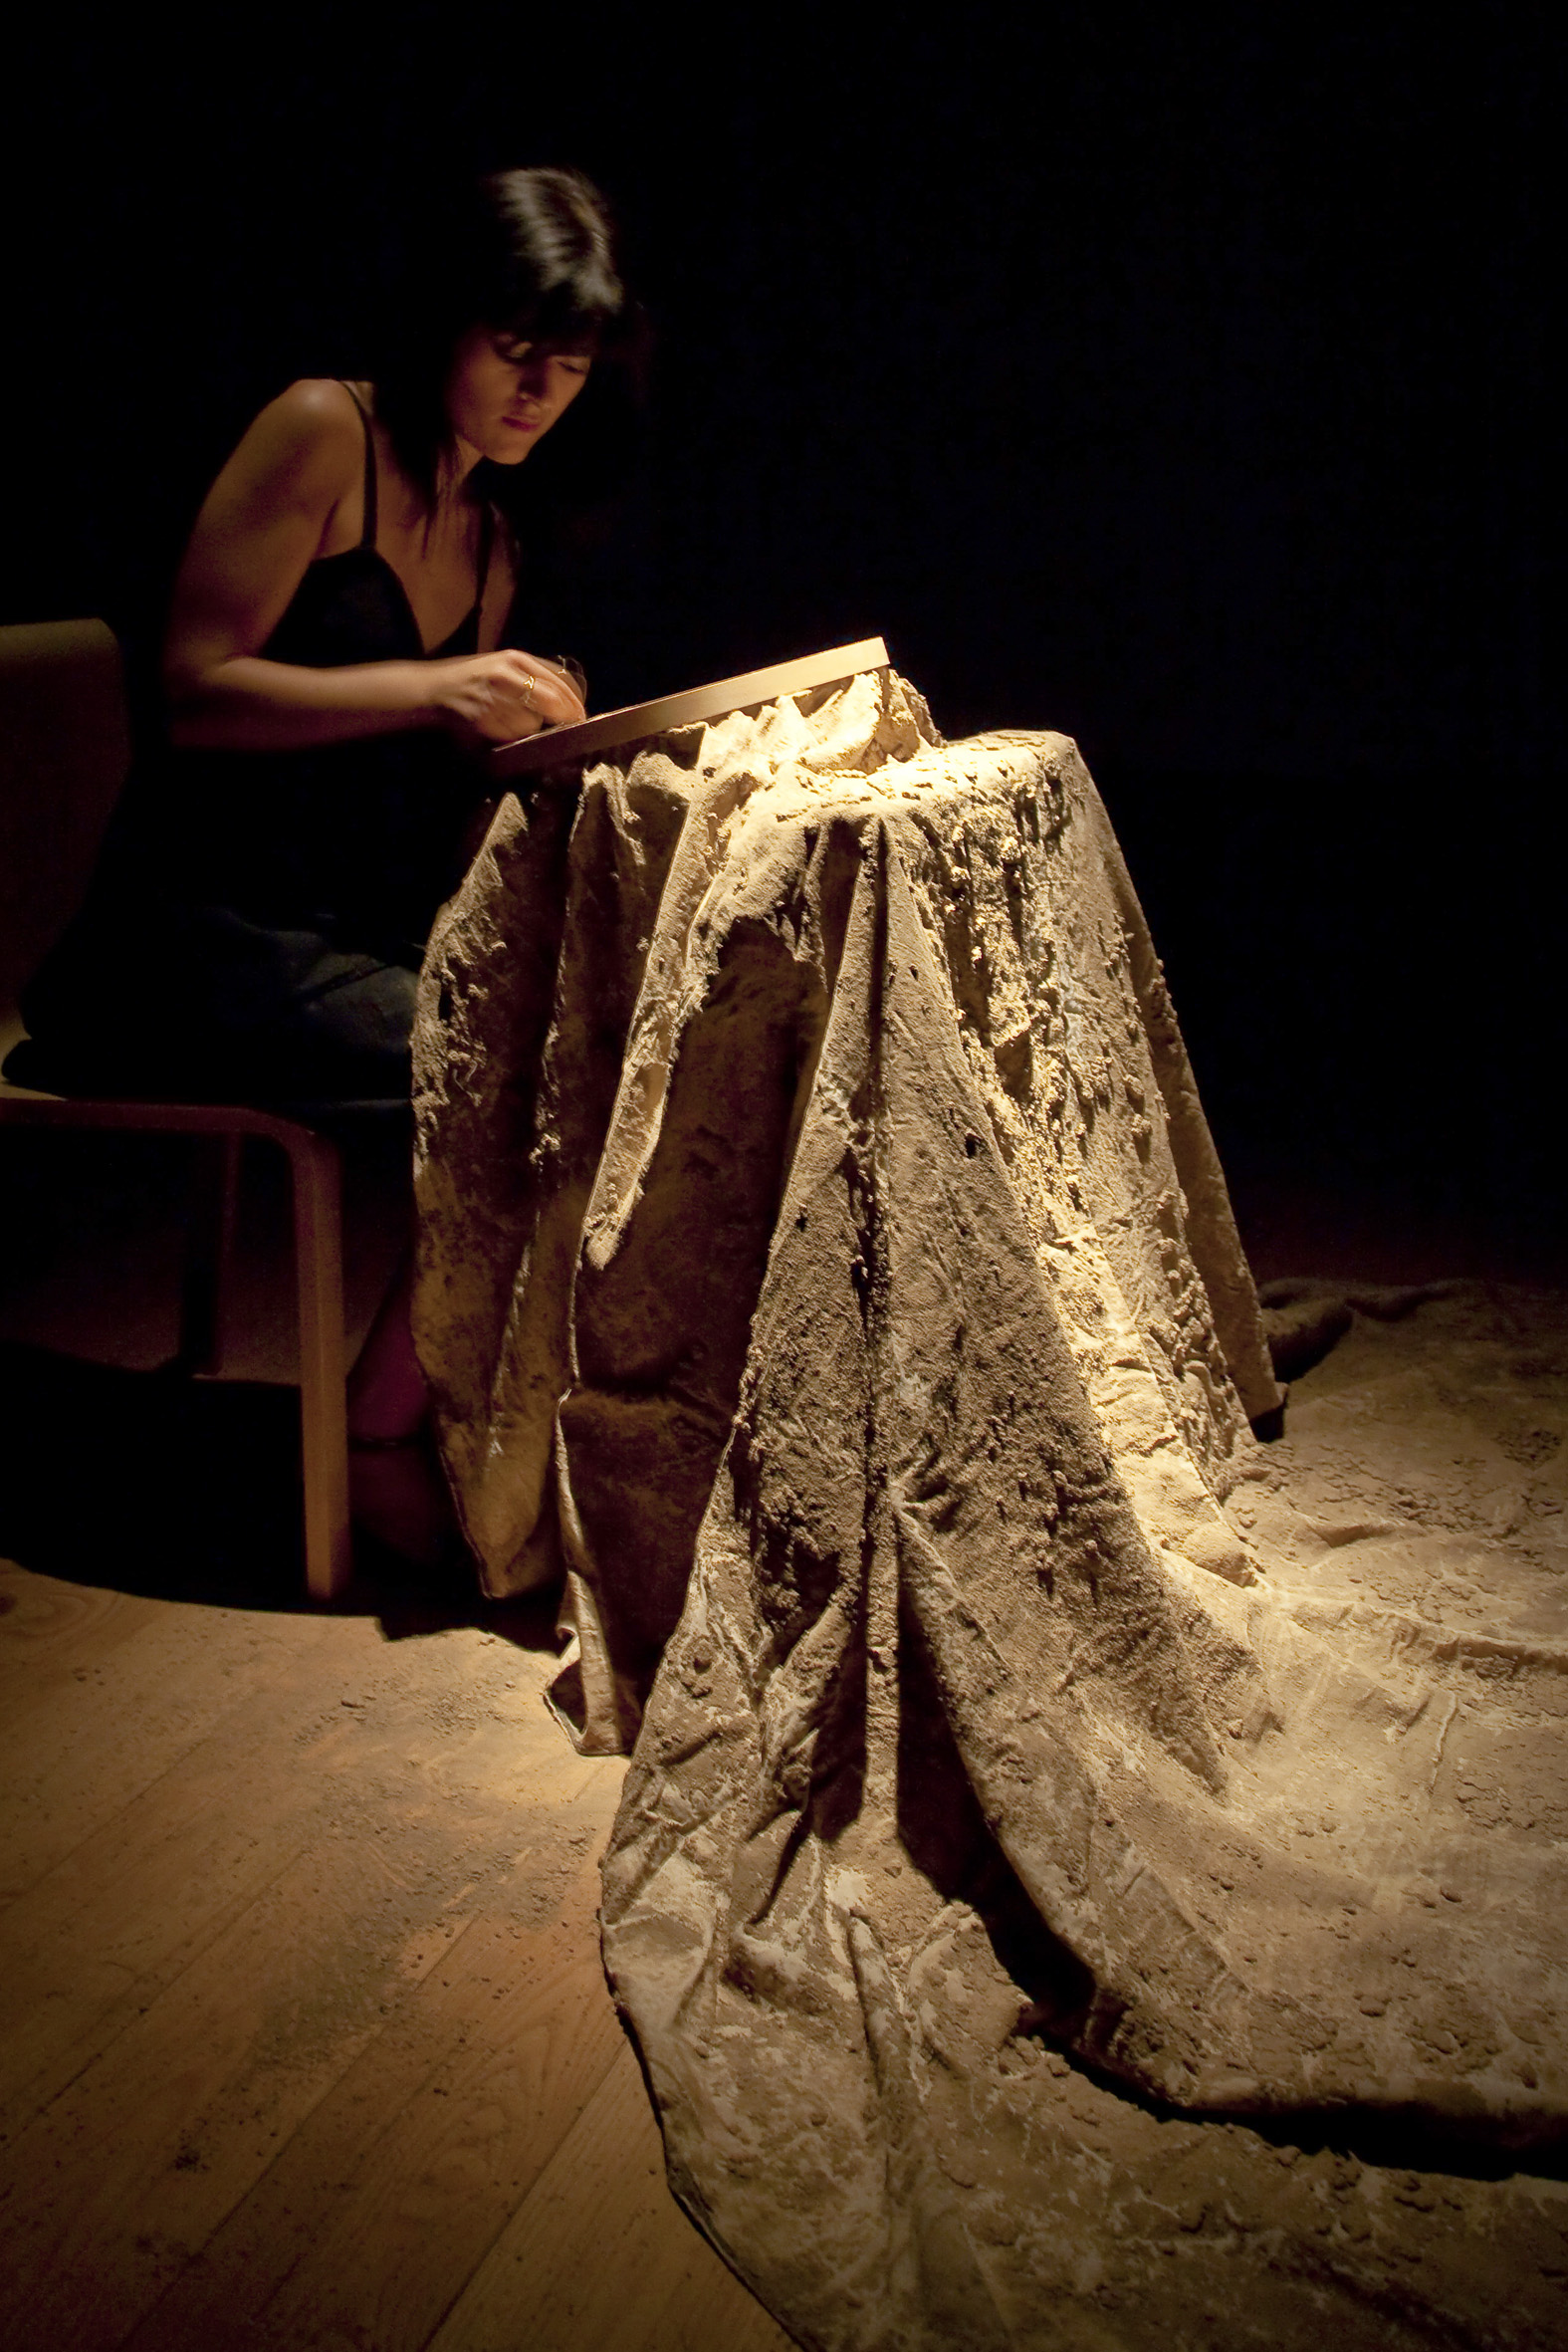 Teresa Margolles,  The Inability to Represent the Tragedy , photo A. Benestante